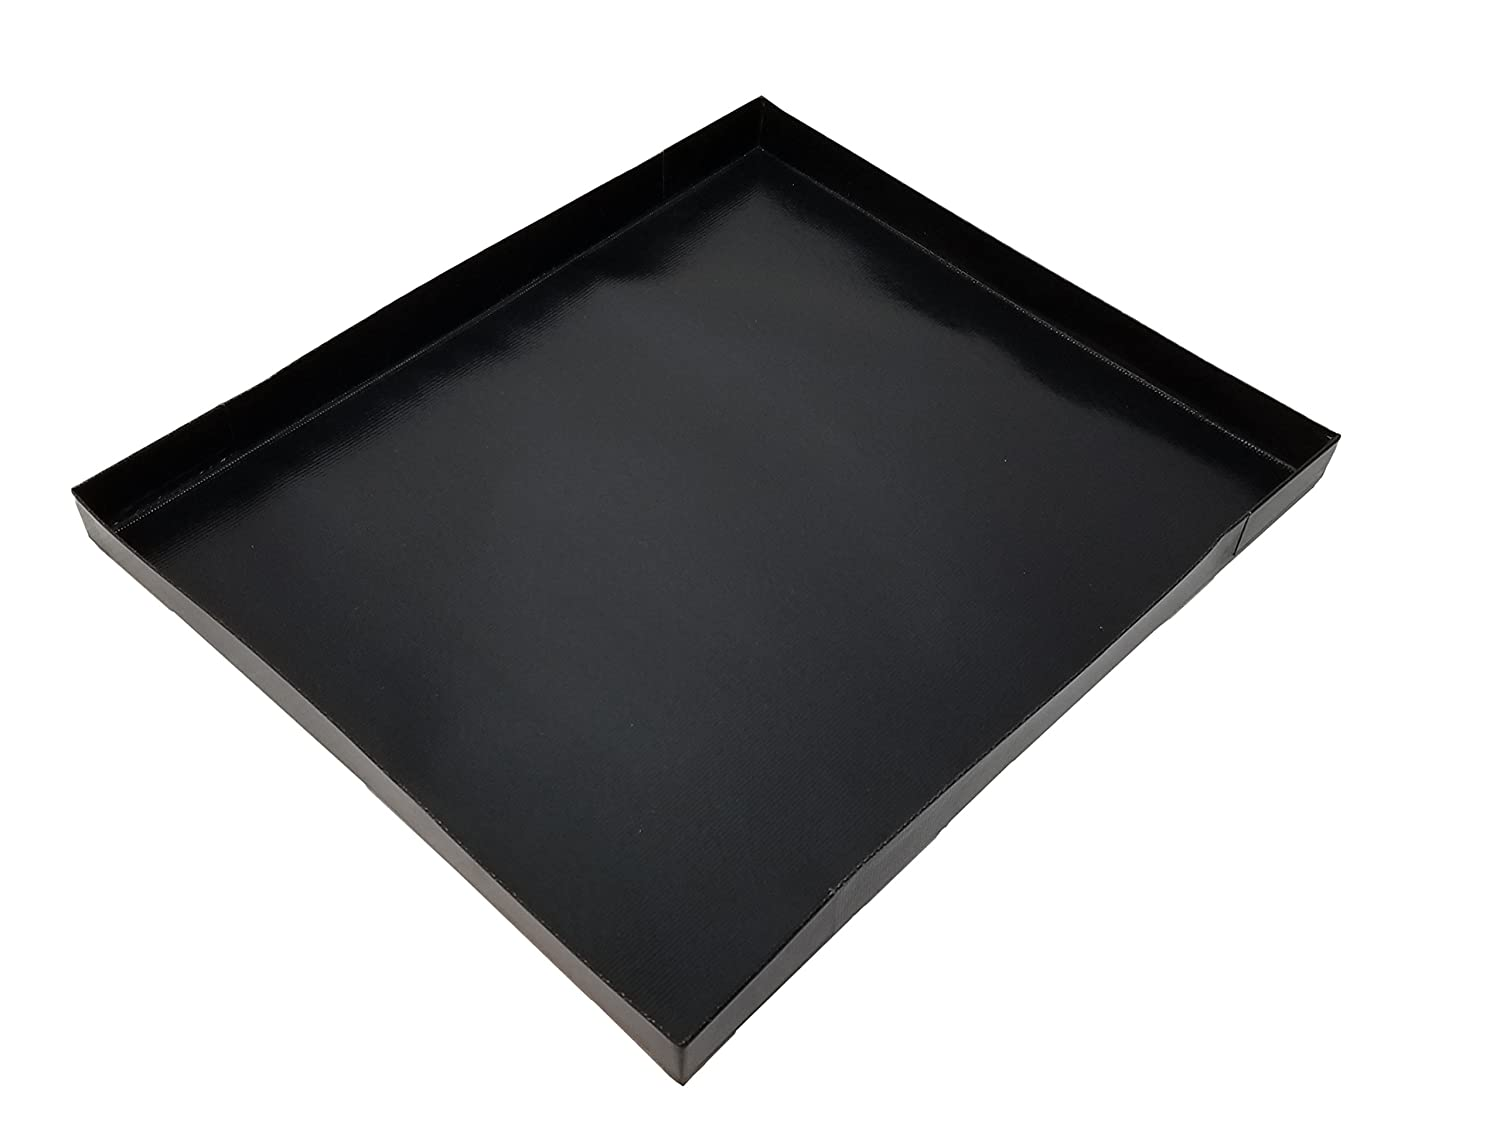 """11.5"""" x 13.5"""" PTFE Solid Oven Basket for TurboChef, Merrychef, and Amana (Replaces P80054)"""